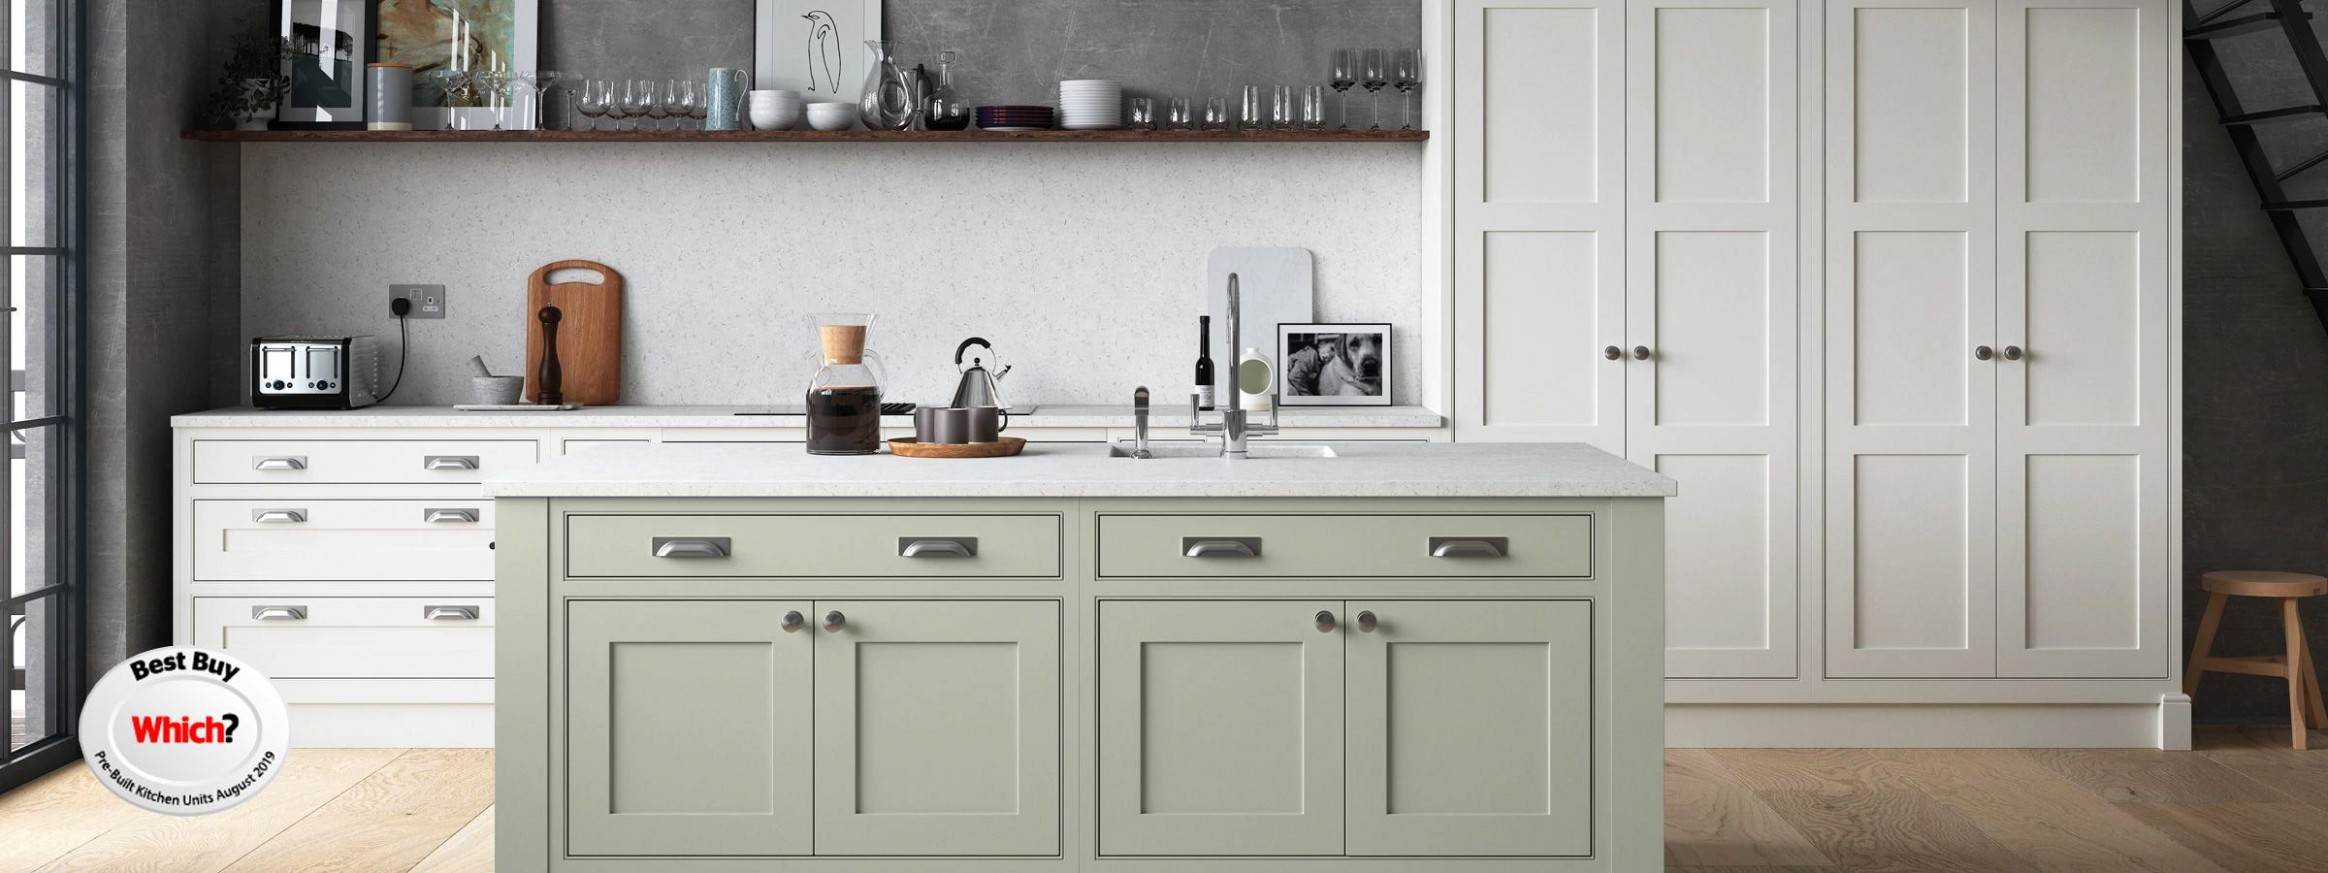 Fitted Kitchen Service - Free Standing Kitchen Cabinets John Lewis